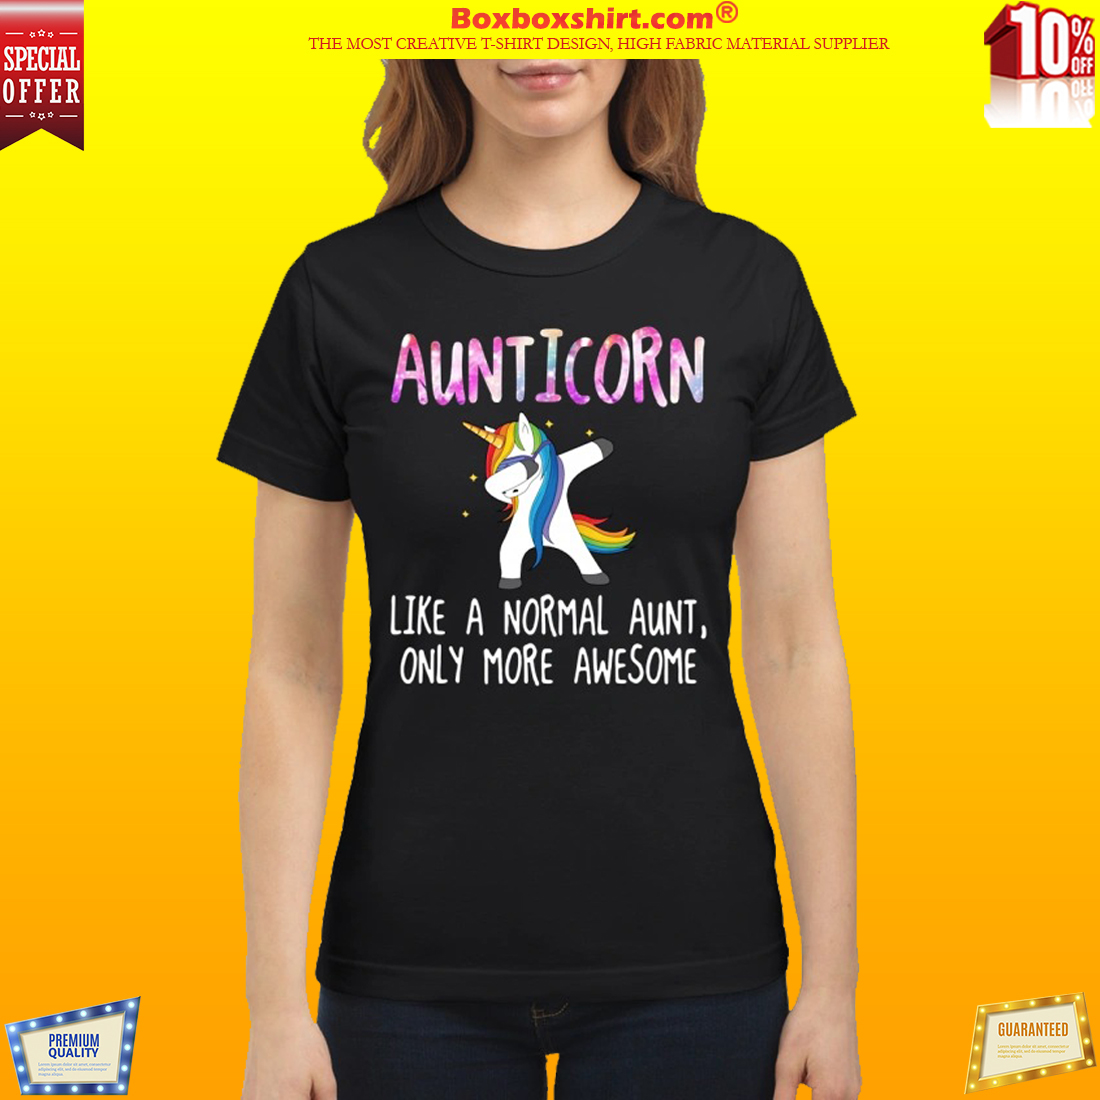 49be16b25 HOTTEST] Aunticorn dabbing like a normal aunt only more awesome